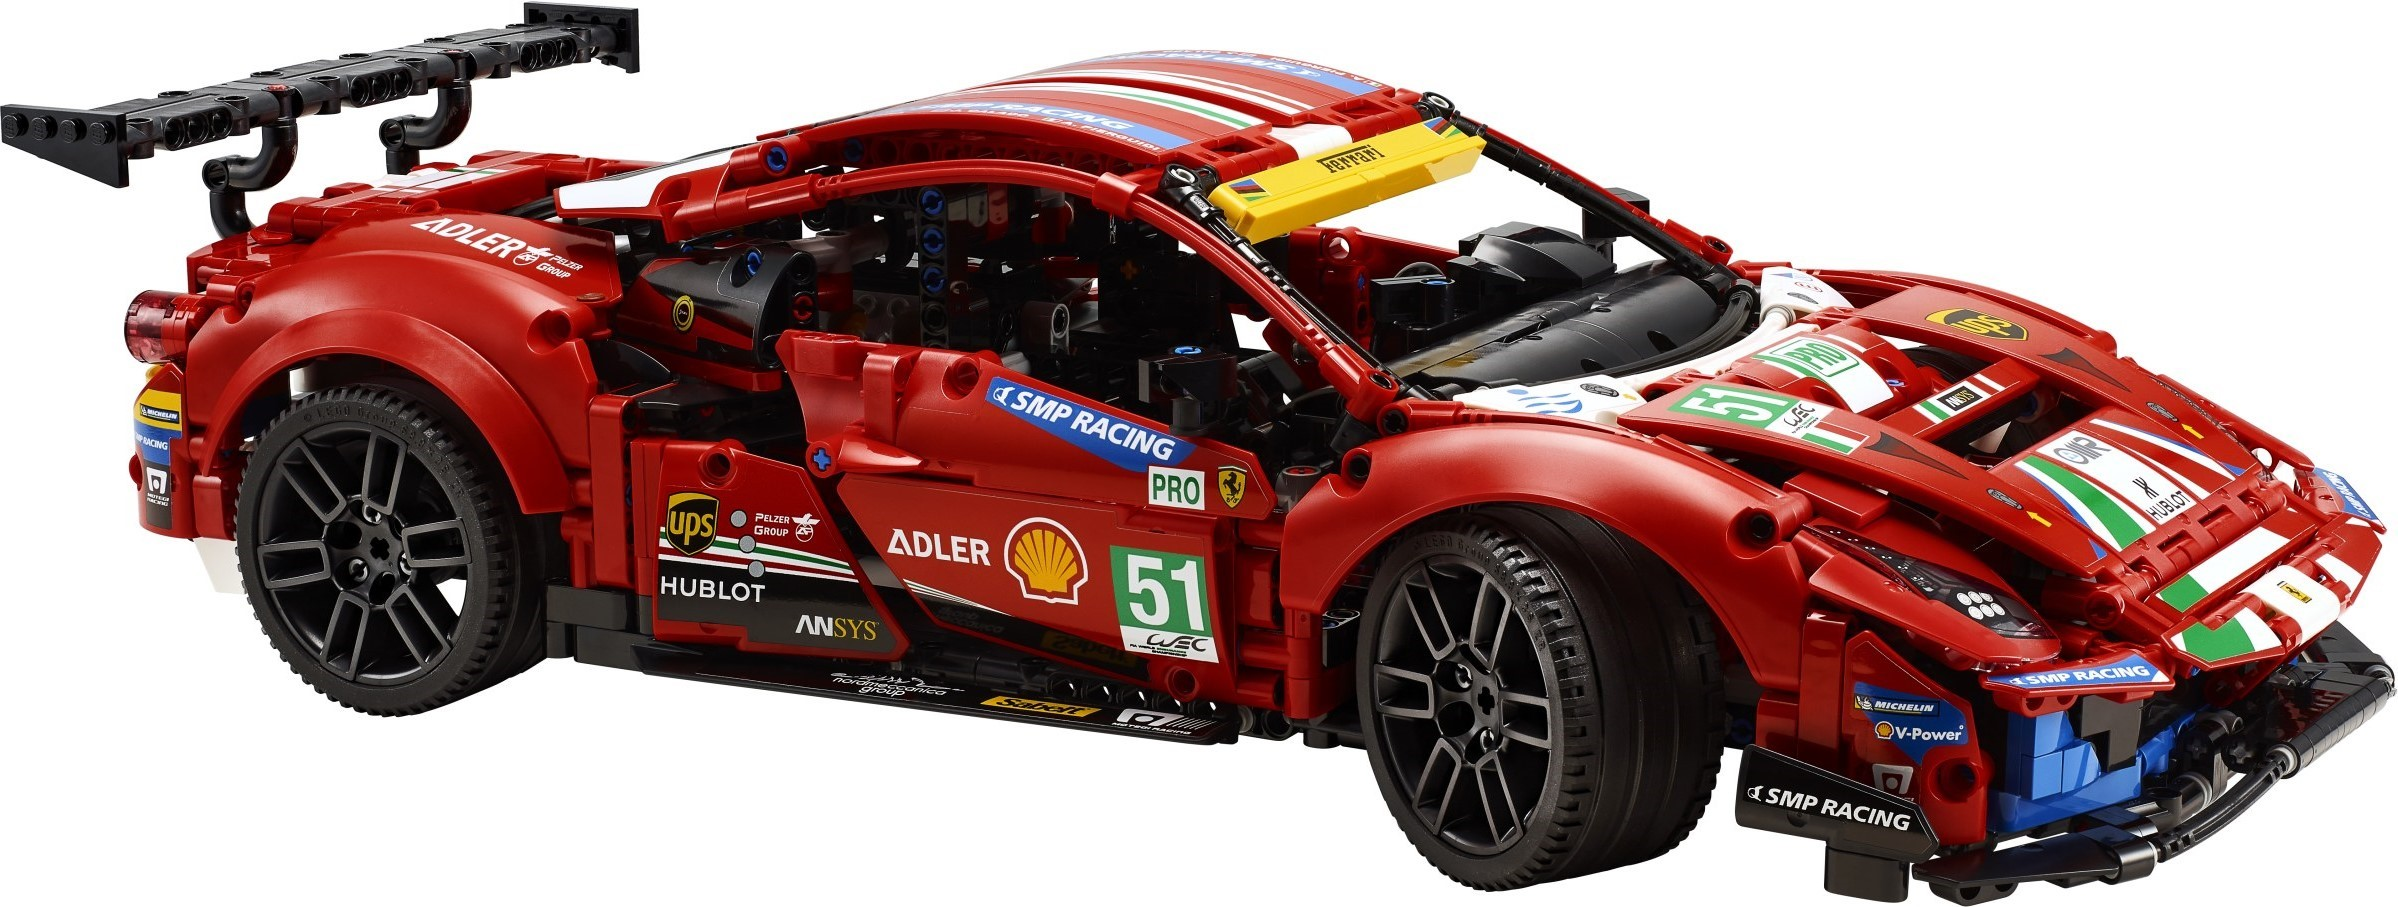 Lego Technic 42125 Ferrari 488 Gte Af Corse 51 Revealed News The Brothers Brick The Brothers Brick